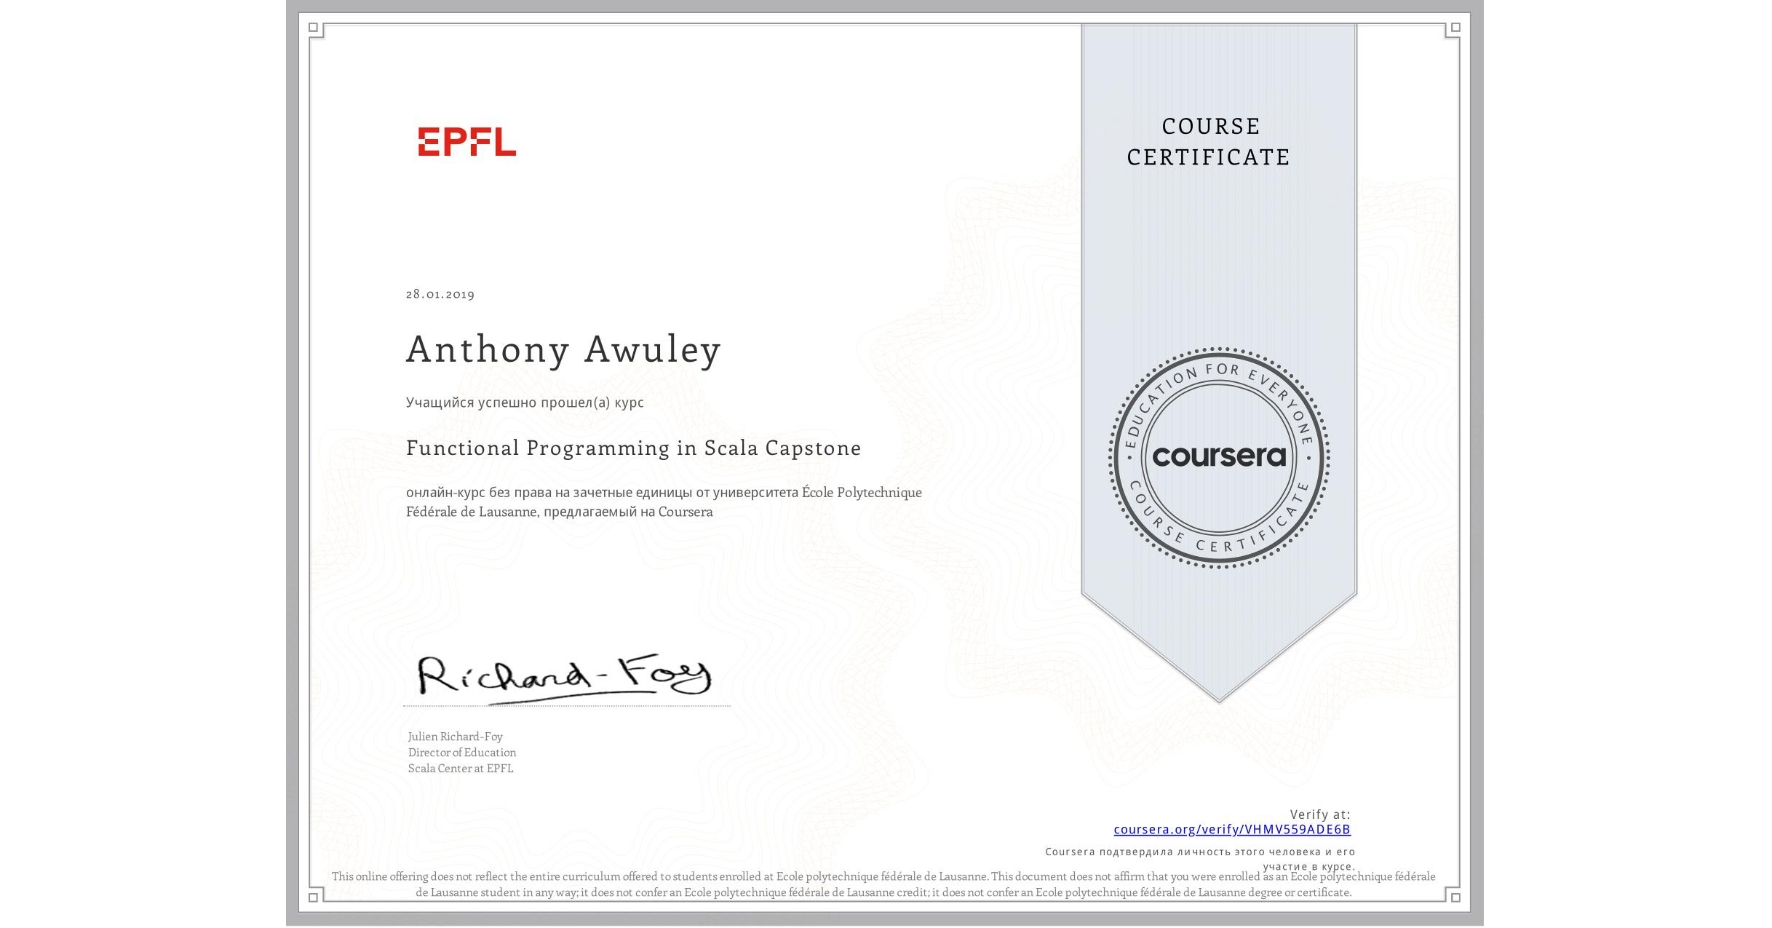 View certificate for Anthony Awuley, Functional Programming in Scala Capstone, an online non-credit course authorized by École Polytechnique Fédérale de Lausanne and offered through Coursera